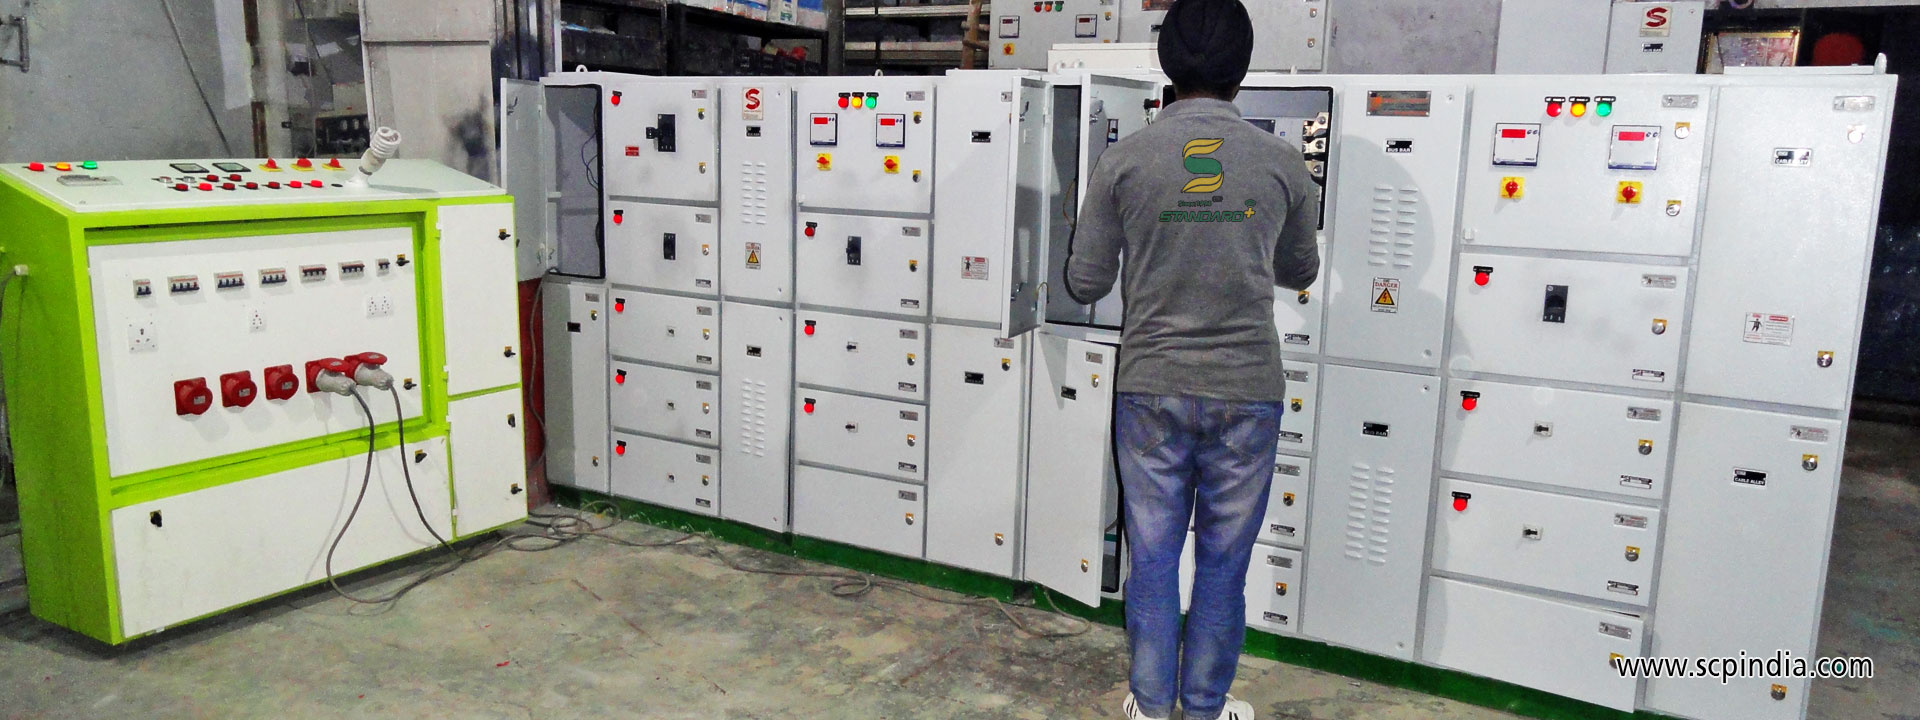 automation control panel, electrical control panels manufacturers ...